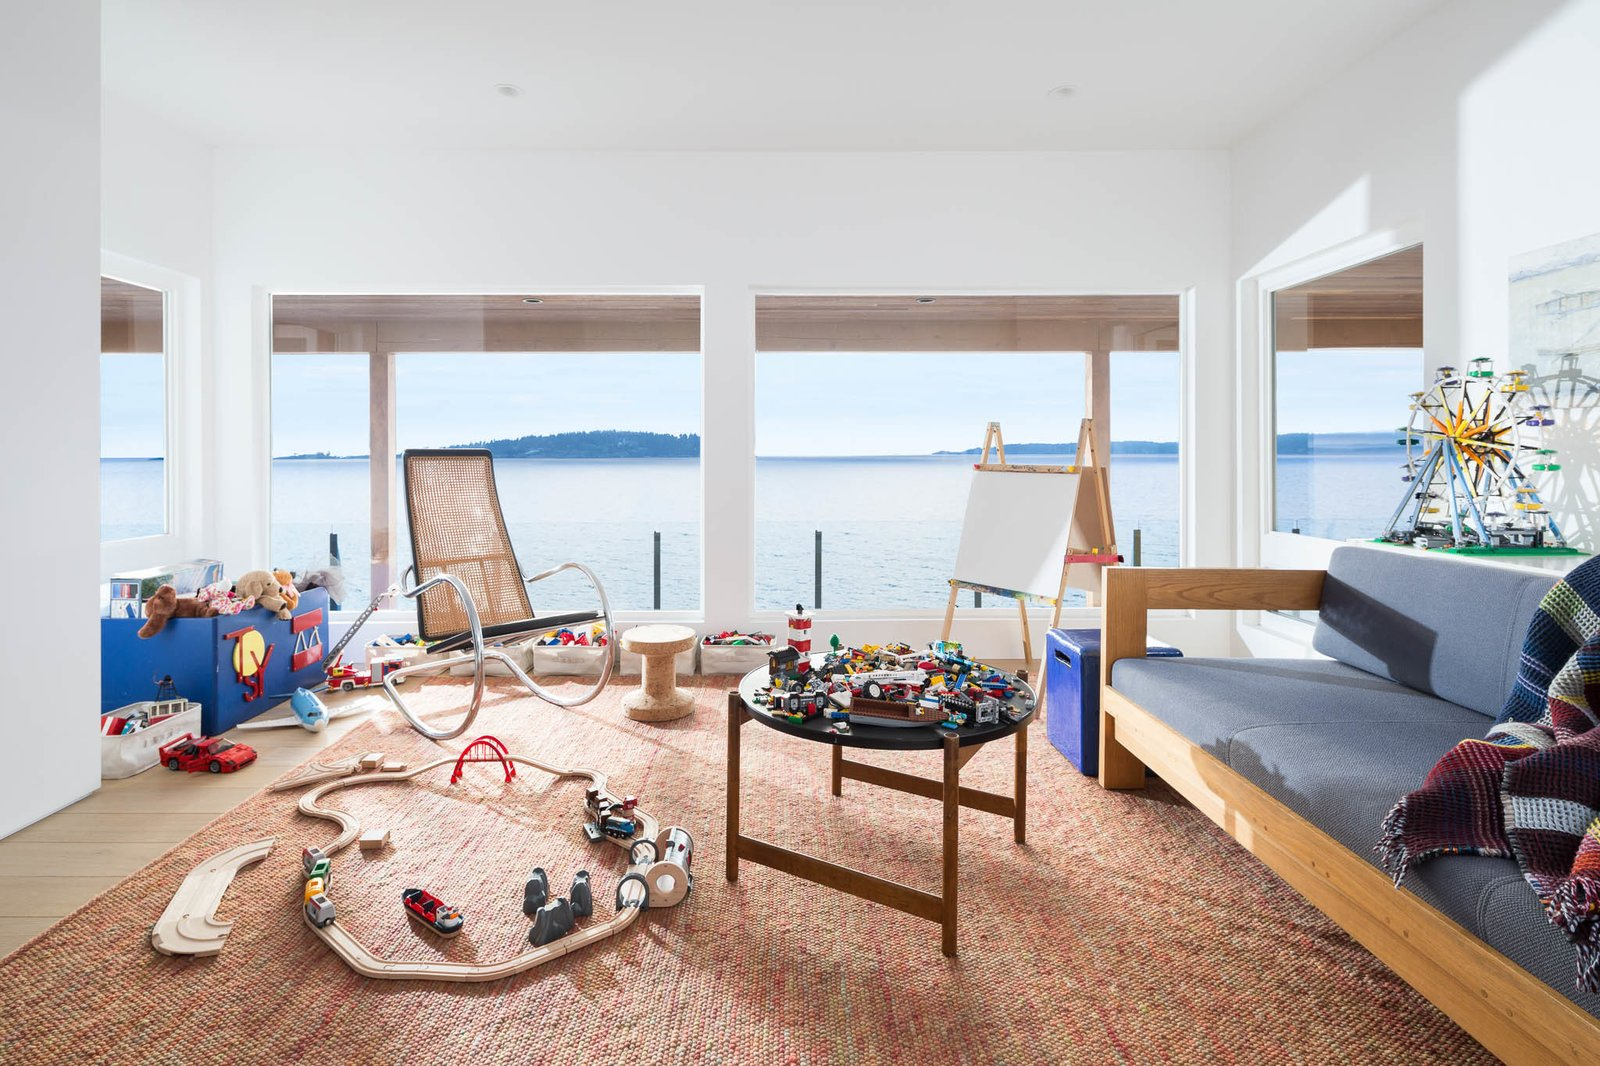 Articles about 6 whimsical kids rooms on Dwell.com